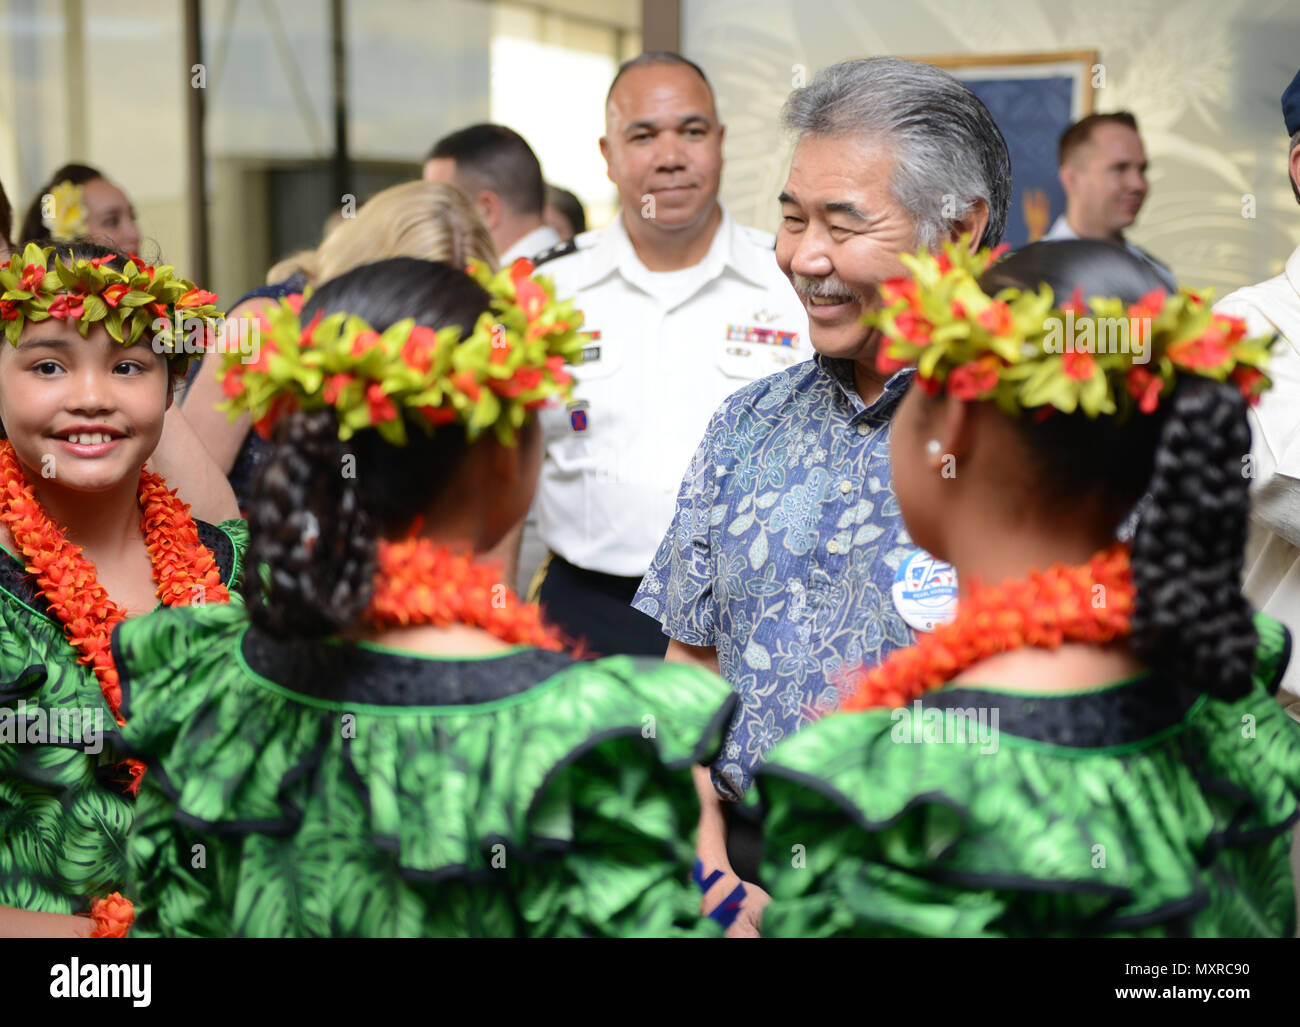 hawaii state governor david y ige speaks with several young girls